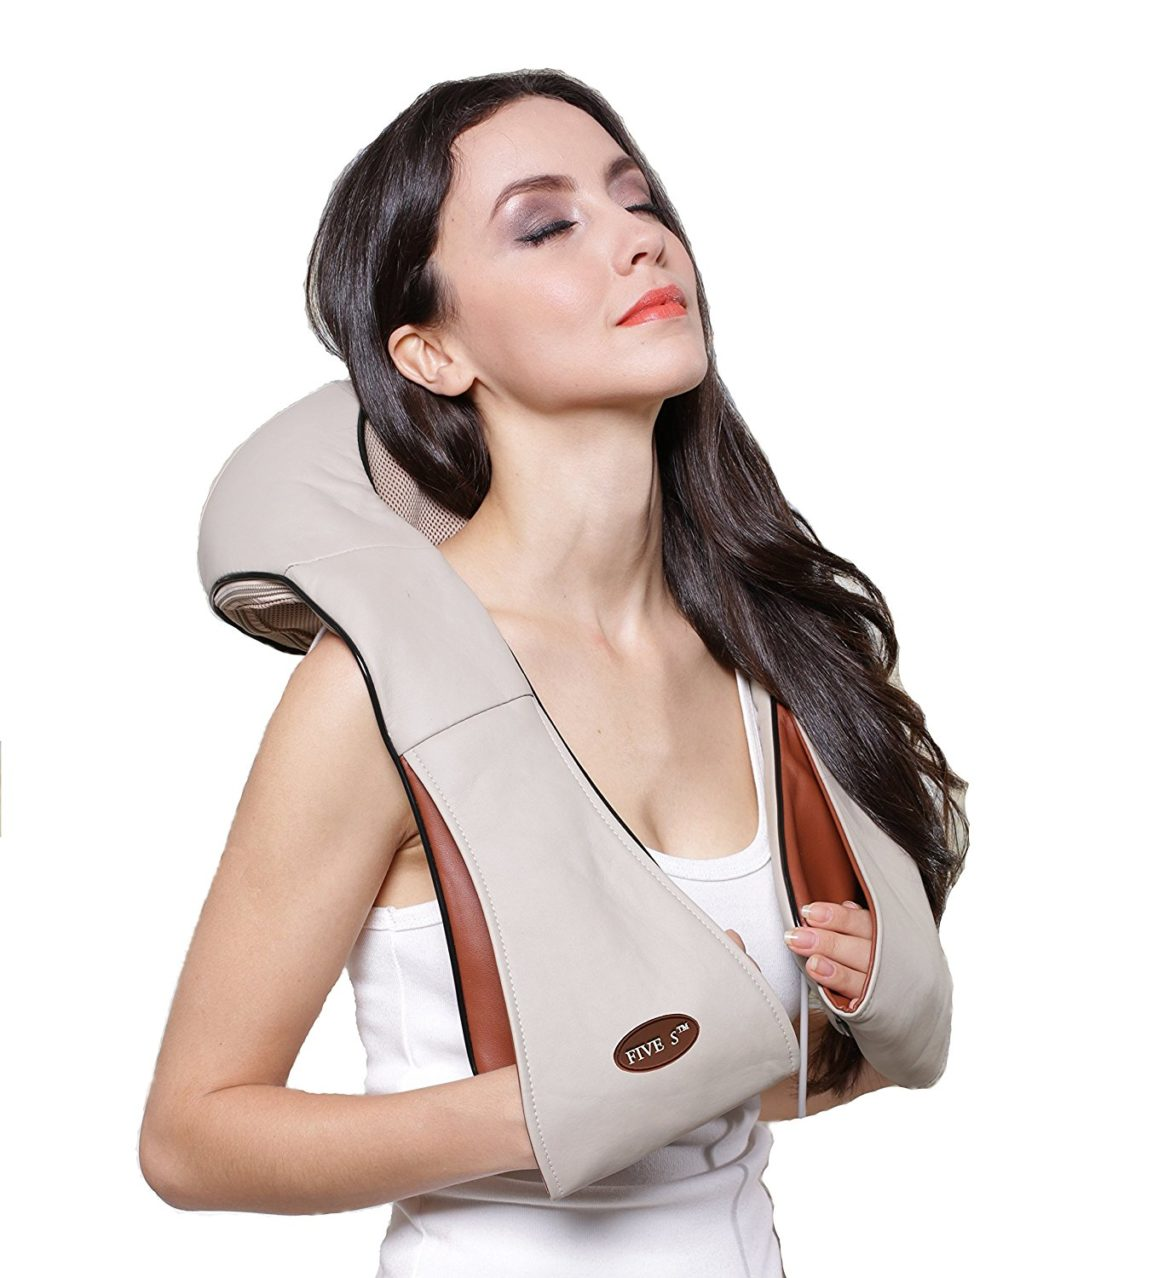 Get Stress-Free Using the Best Neck and Shoulder Massagers